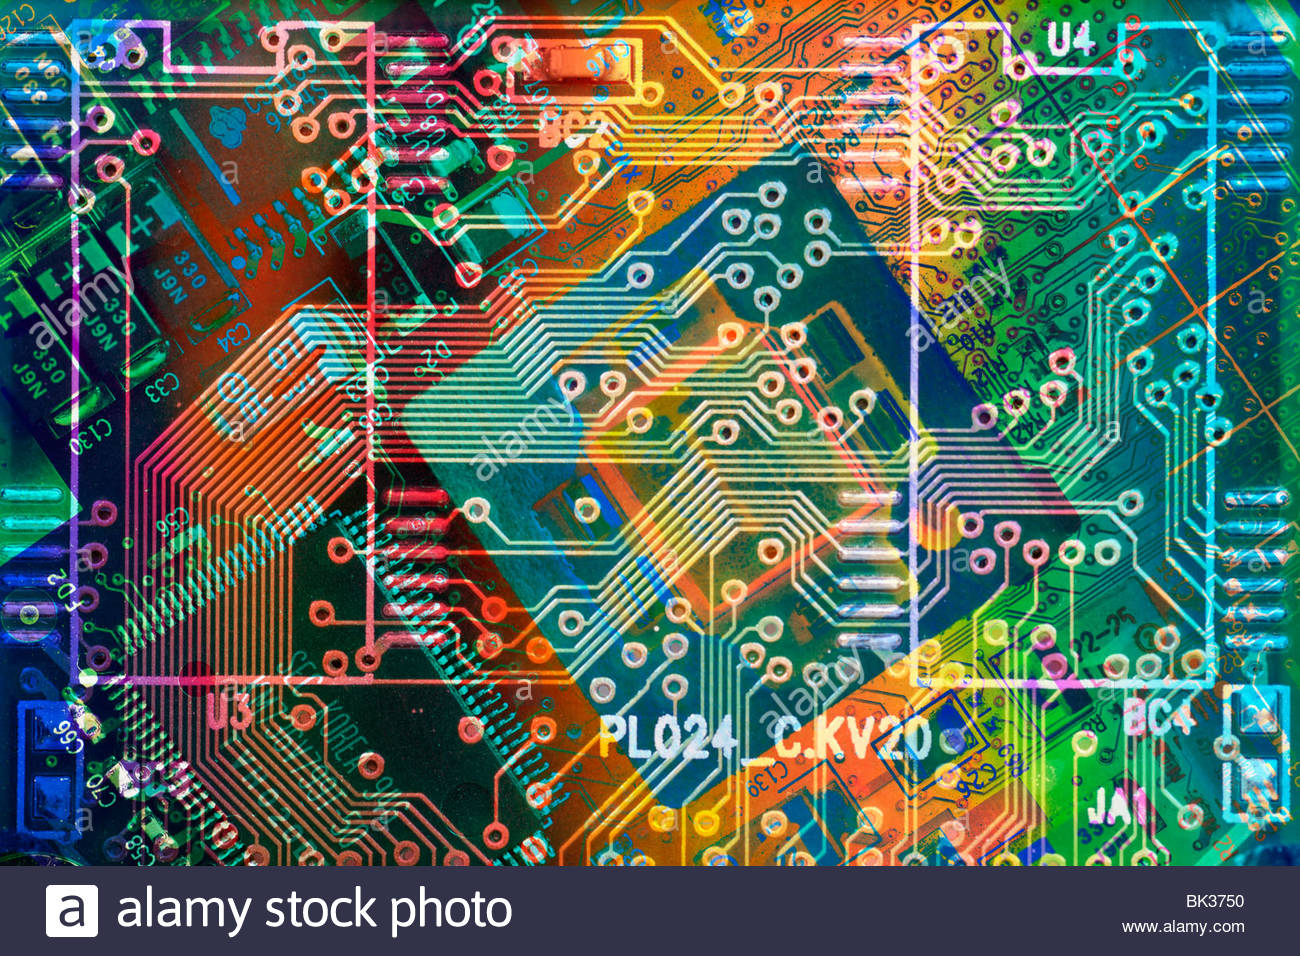 Computer Altered Stock Photos Images Alamy Circuit Board And Binary Code Forming A Mysterious Night Landscape Of Chip Cpu Central Processing Unit Digital Circuitry Transistor Complexity Data